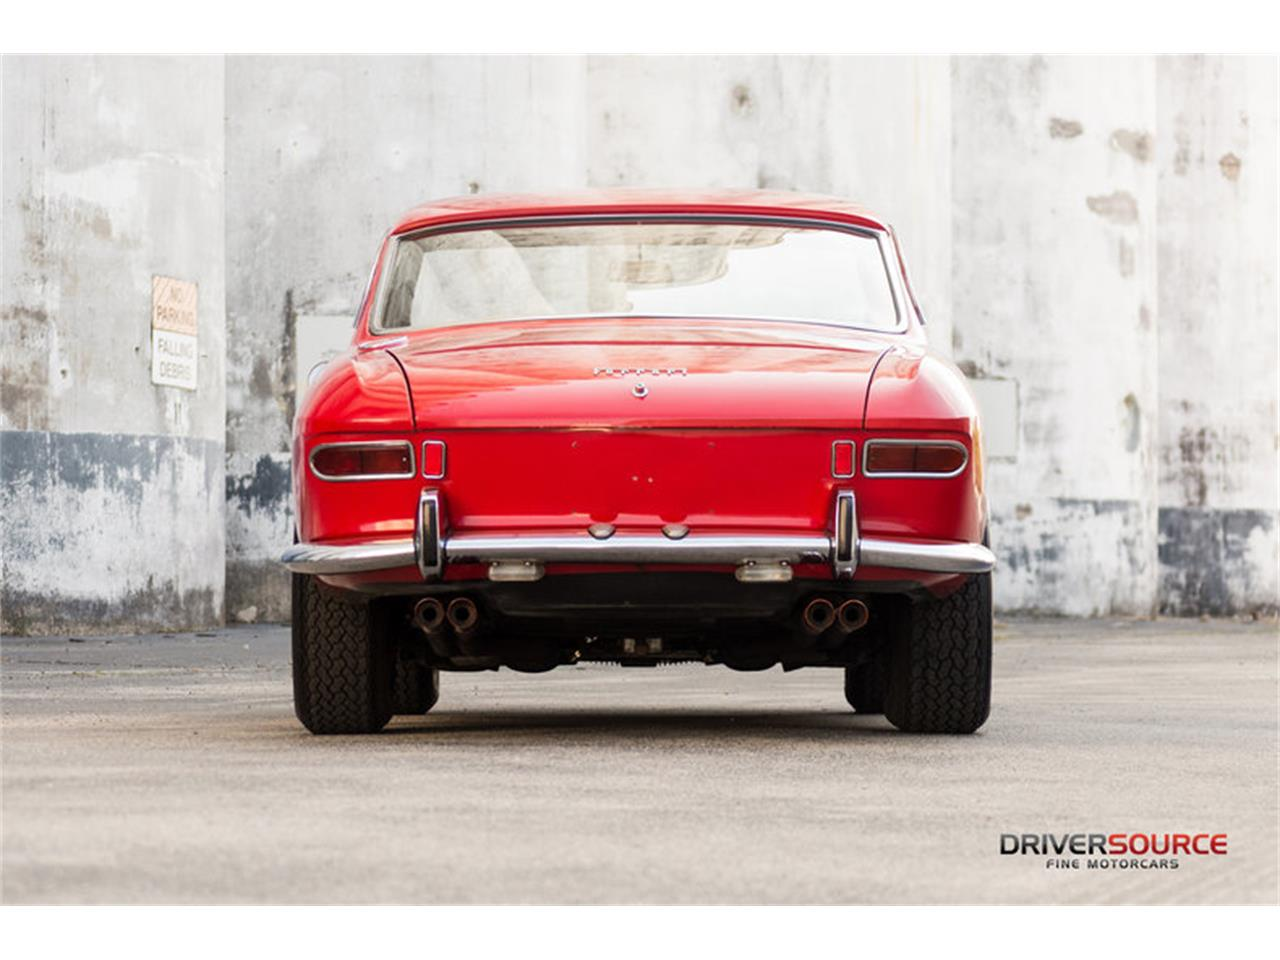 Large Picture of 1966 Ferrari 330 GT located in Texas - $292,500.00 Offered by Driversource - MH2U